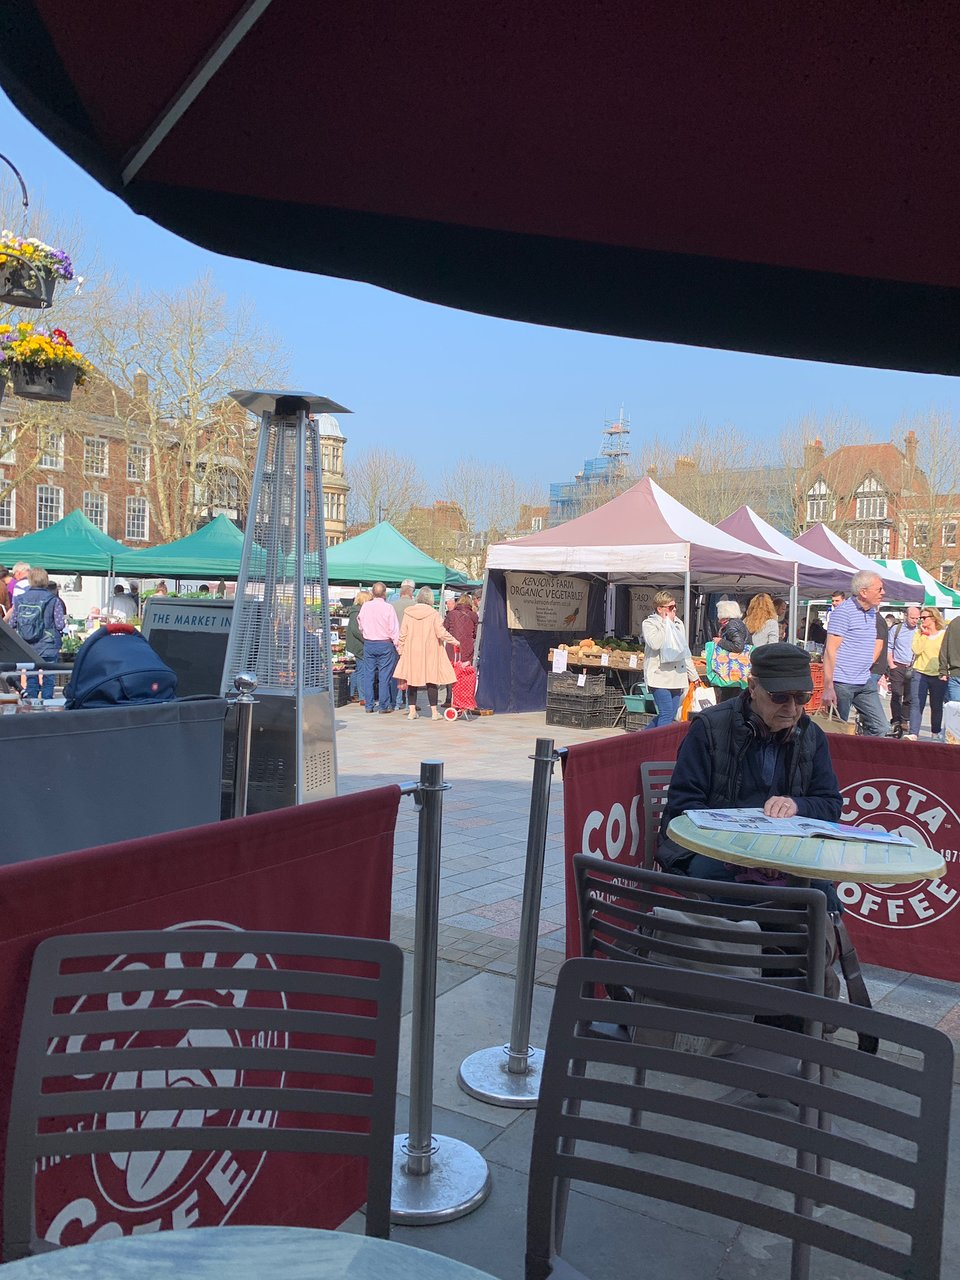 Salisbury Market Place All You Need To Know Before You Go Updated 2020 England Tripadvisor - Garden Furniture Clearance Windsor Racecourse